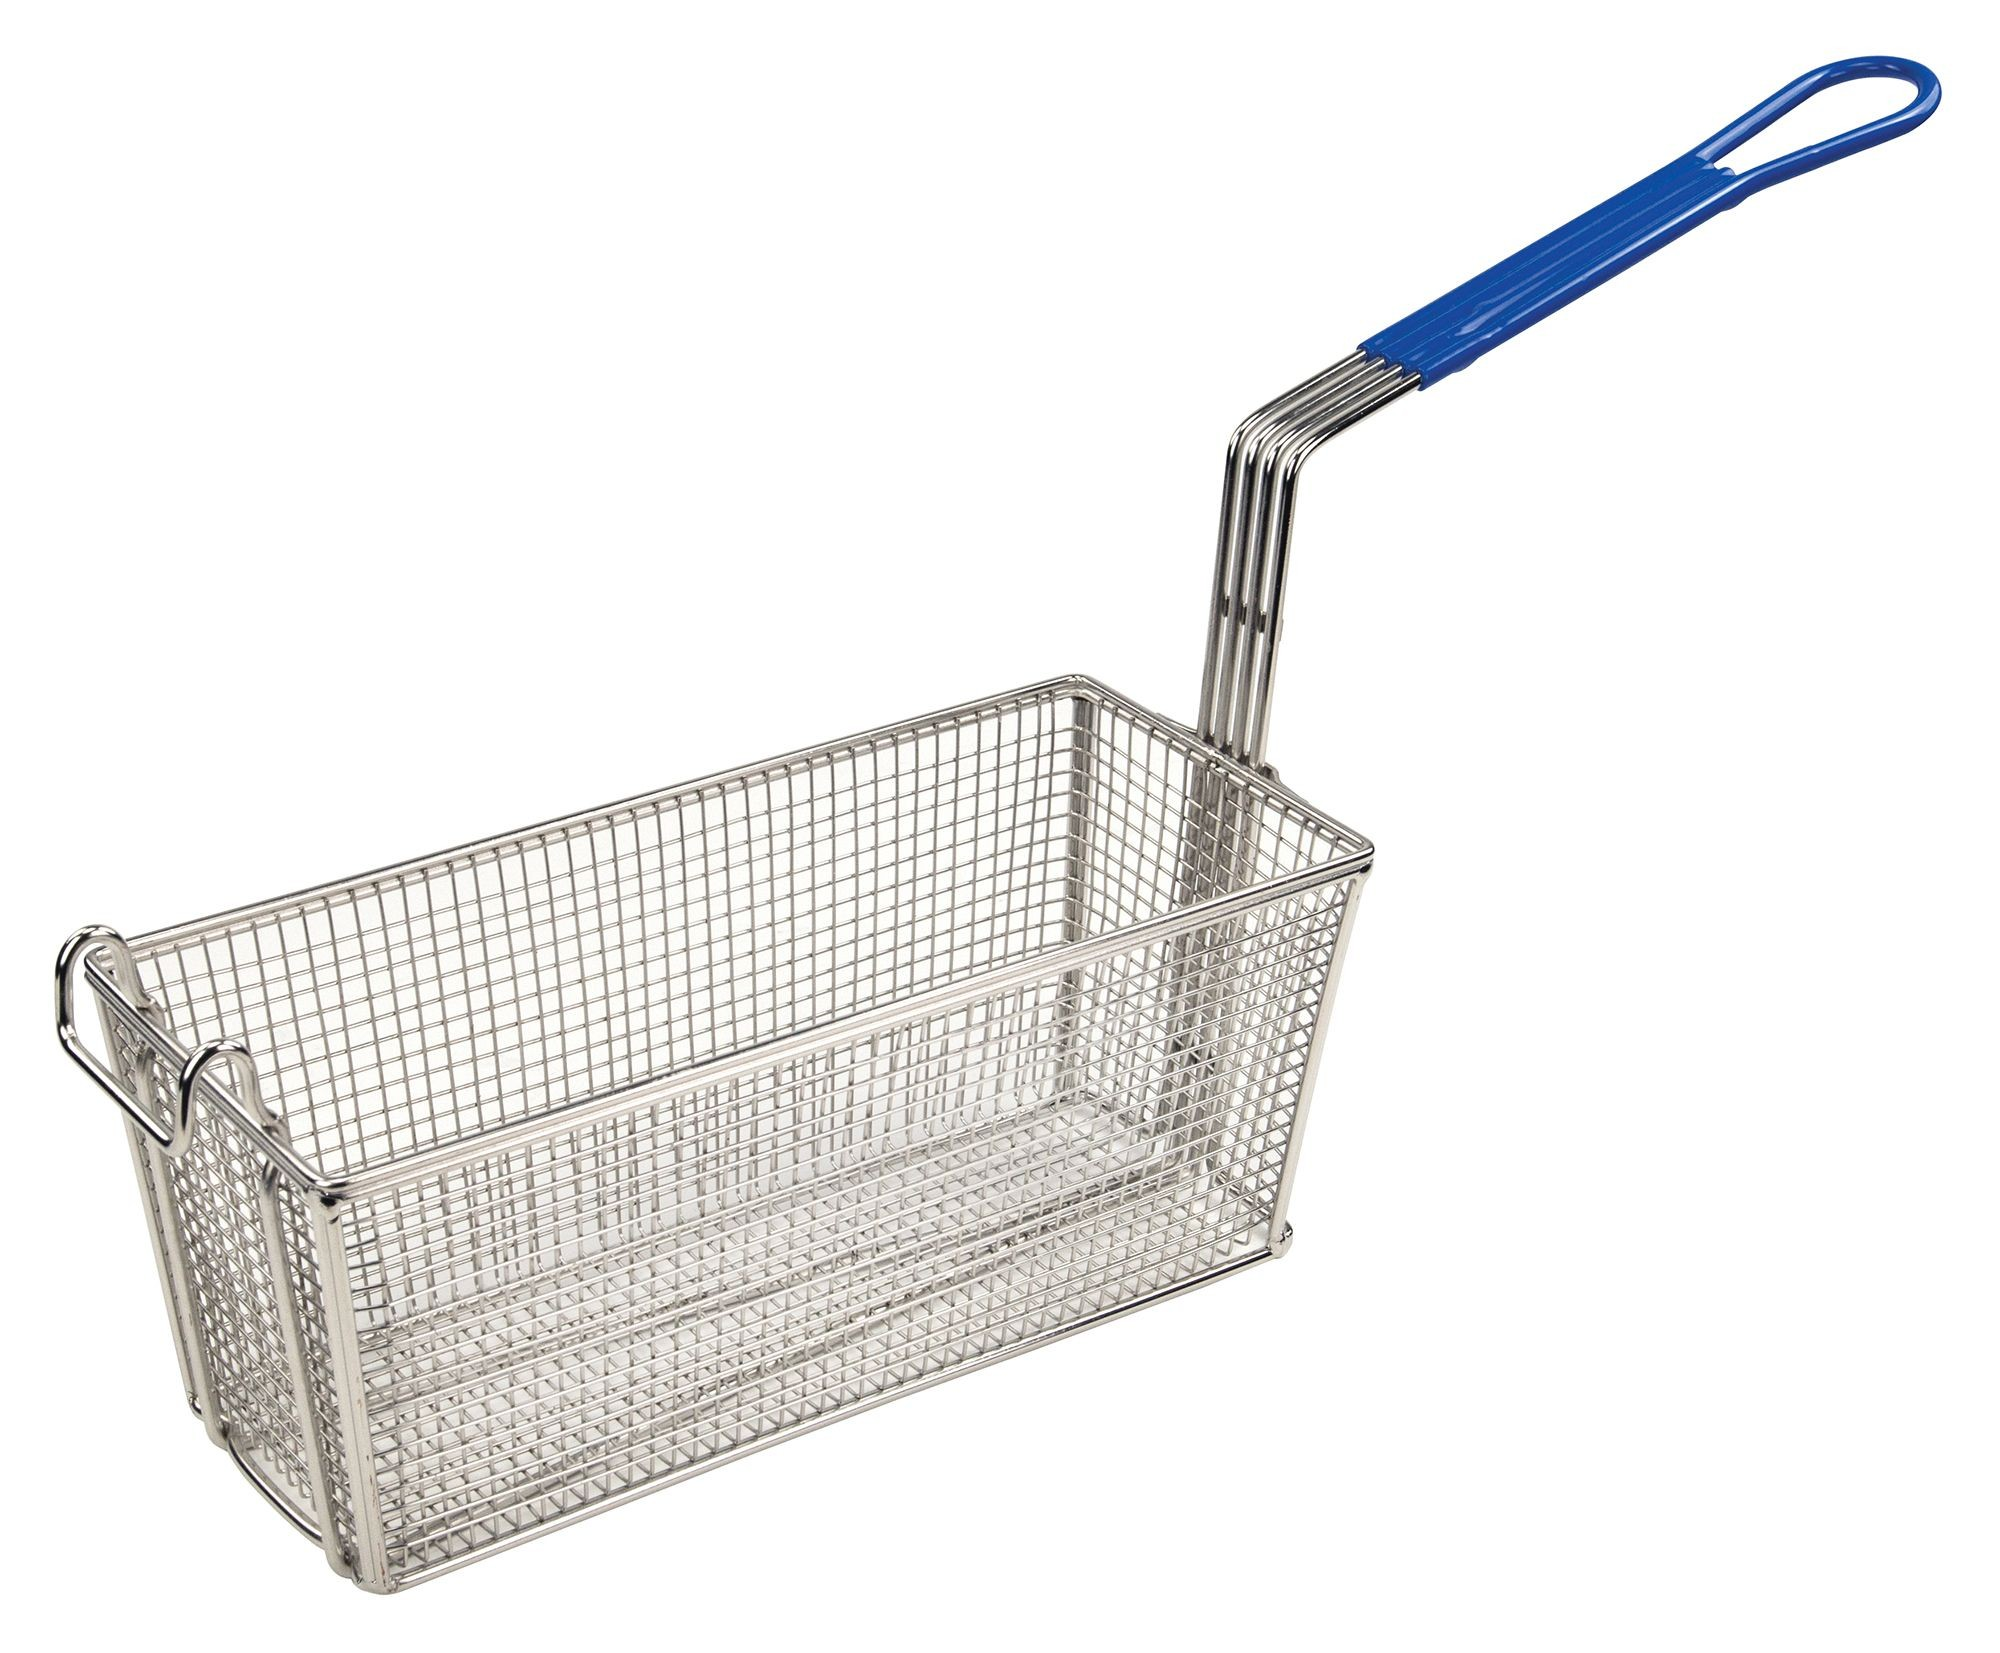 "Winco fb-20 Fry Basket with Blue Plastic Handle 13-1/4"" x 5-5/8"" x 5-7/8"""